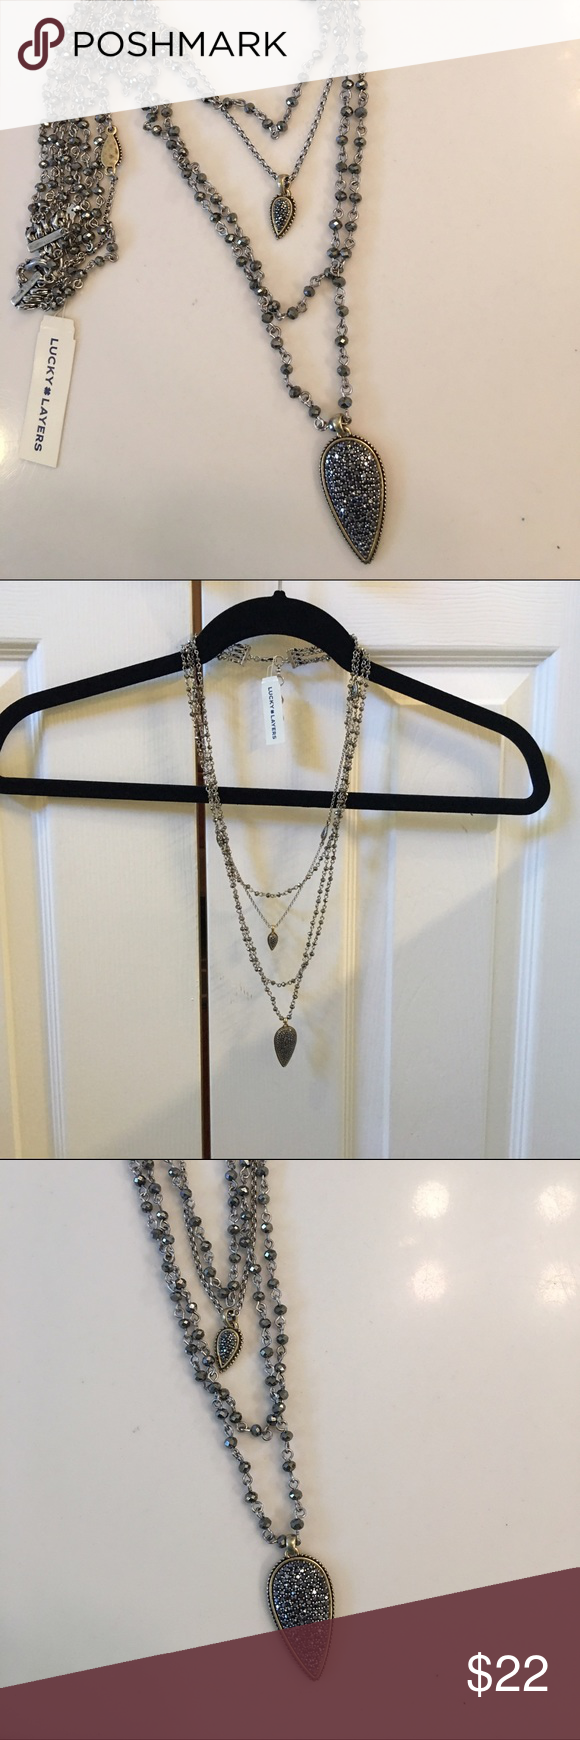 Lucky brand triple necklace new with tags Triple necklace with smoky rhinestones and a variety of shapes and textures. Lucky Brand Jewelry Necklaces